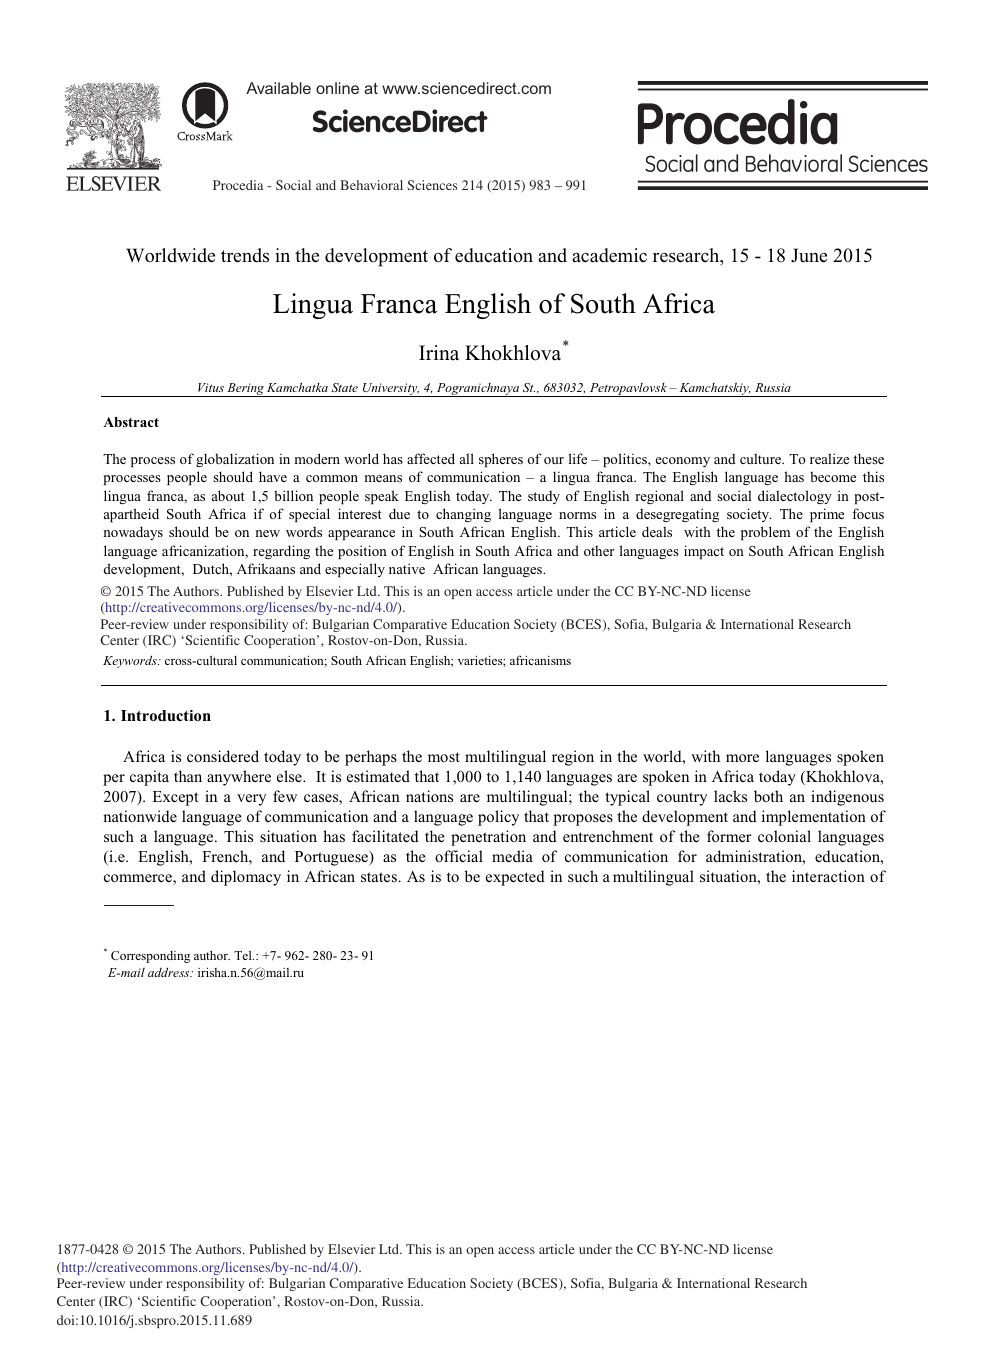 Lingua Franca English of South Africa – topic of research paper in